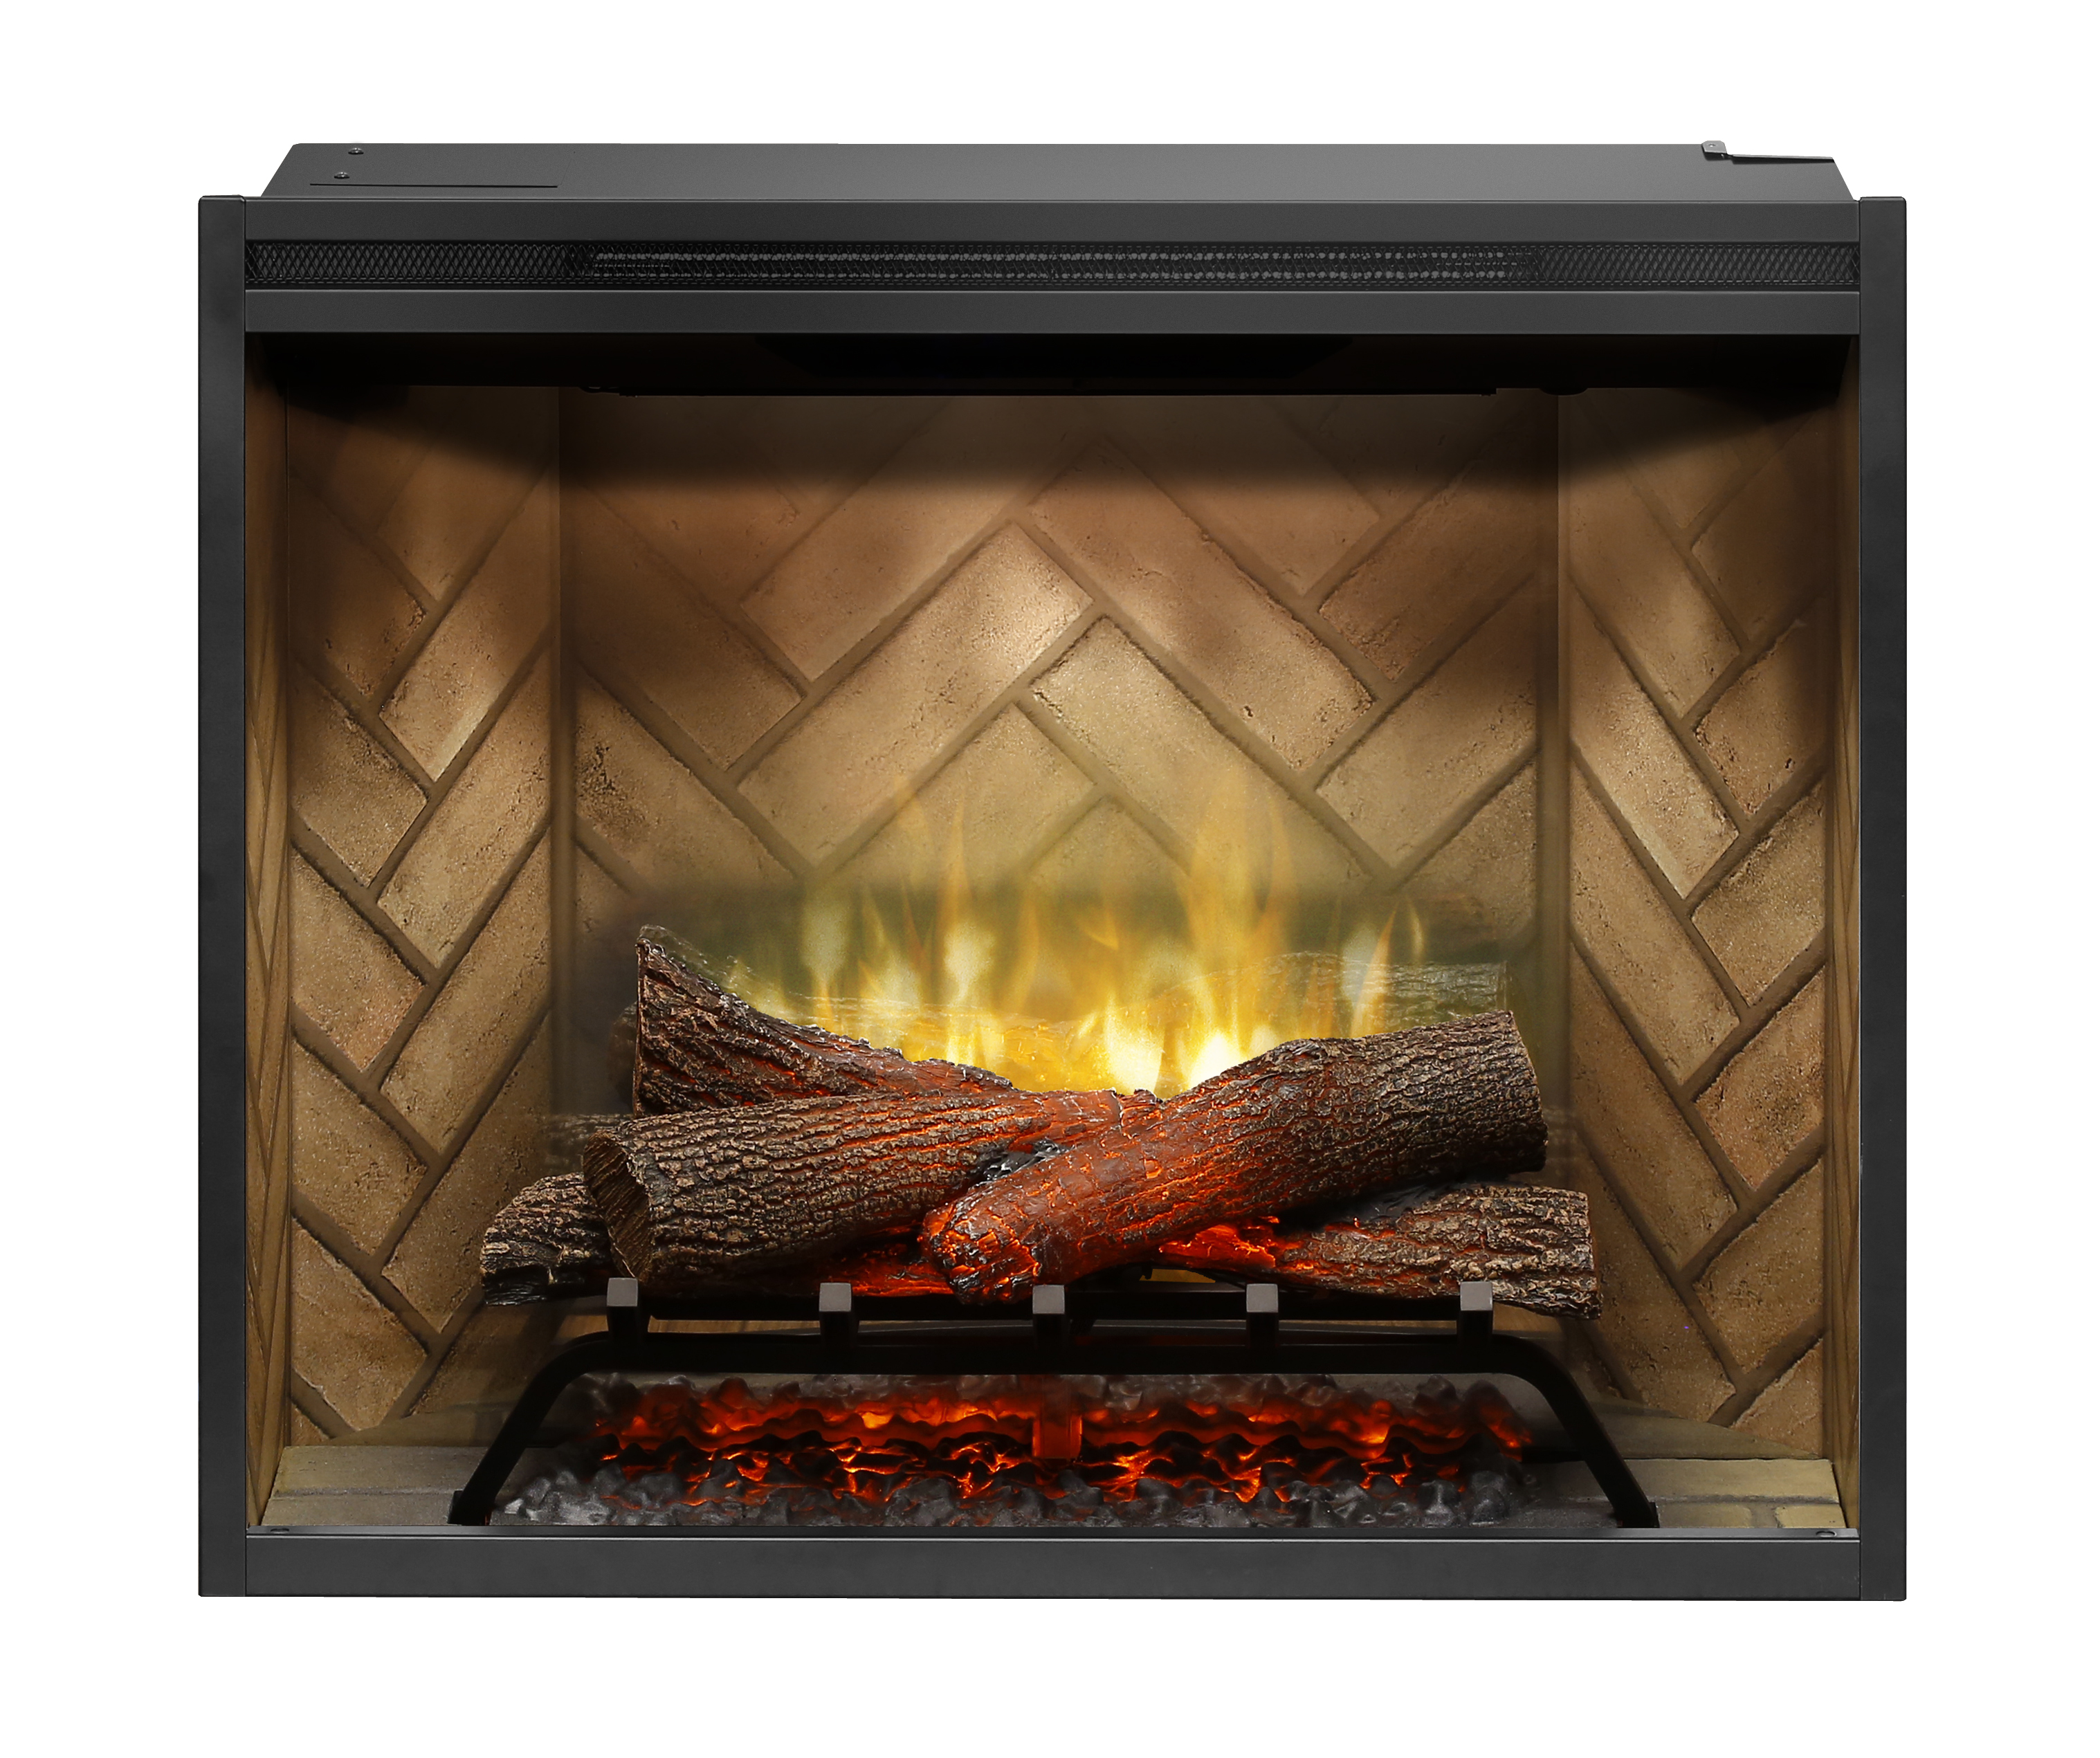 Astonishing Dimplex Revillusion 30 Inch Built In Electric Firebox Rbf30 Home Interior And Landscaping Ologienasavecom